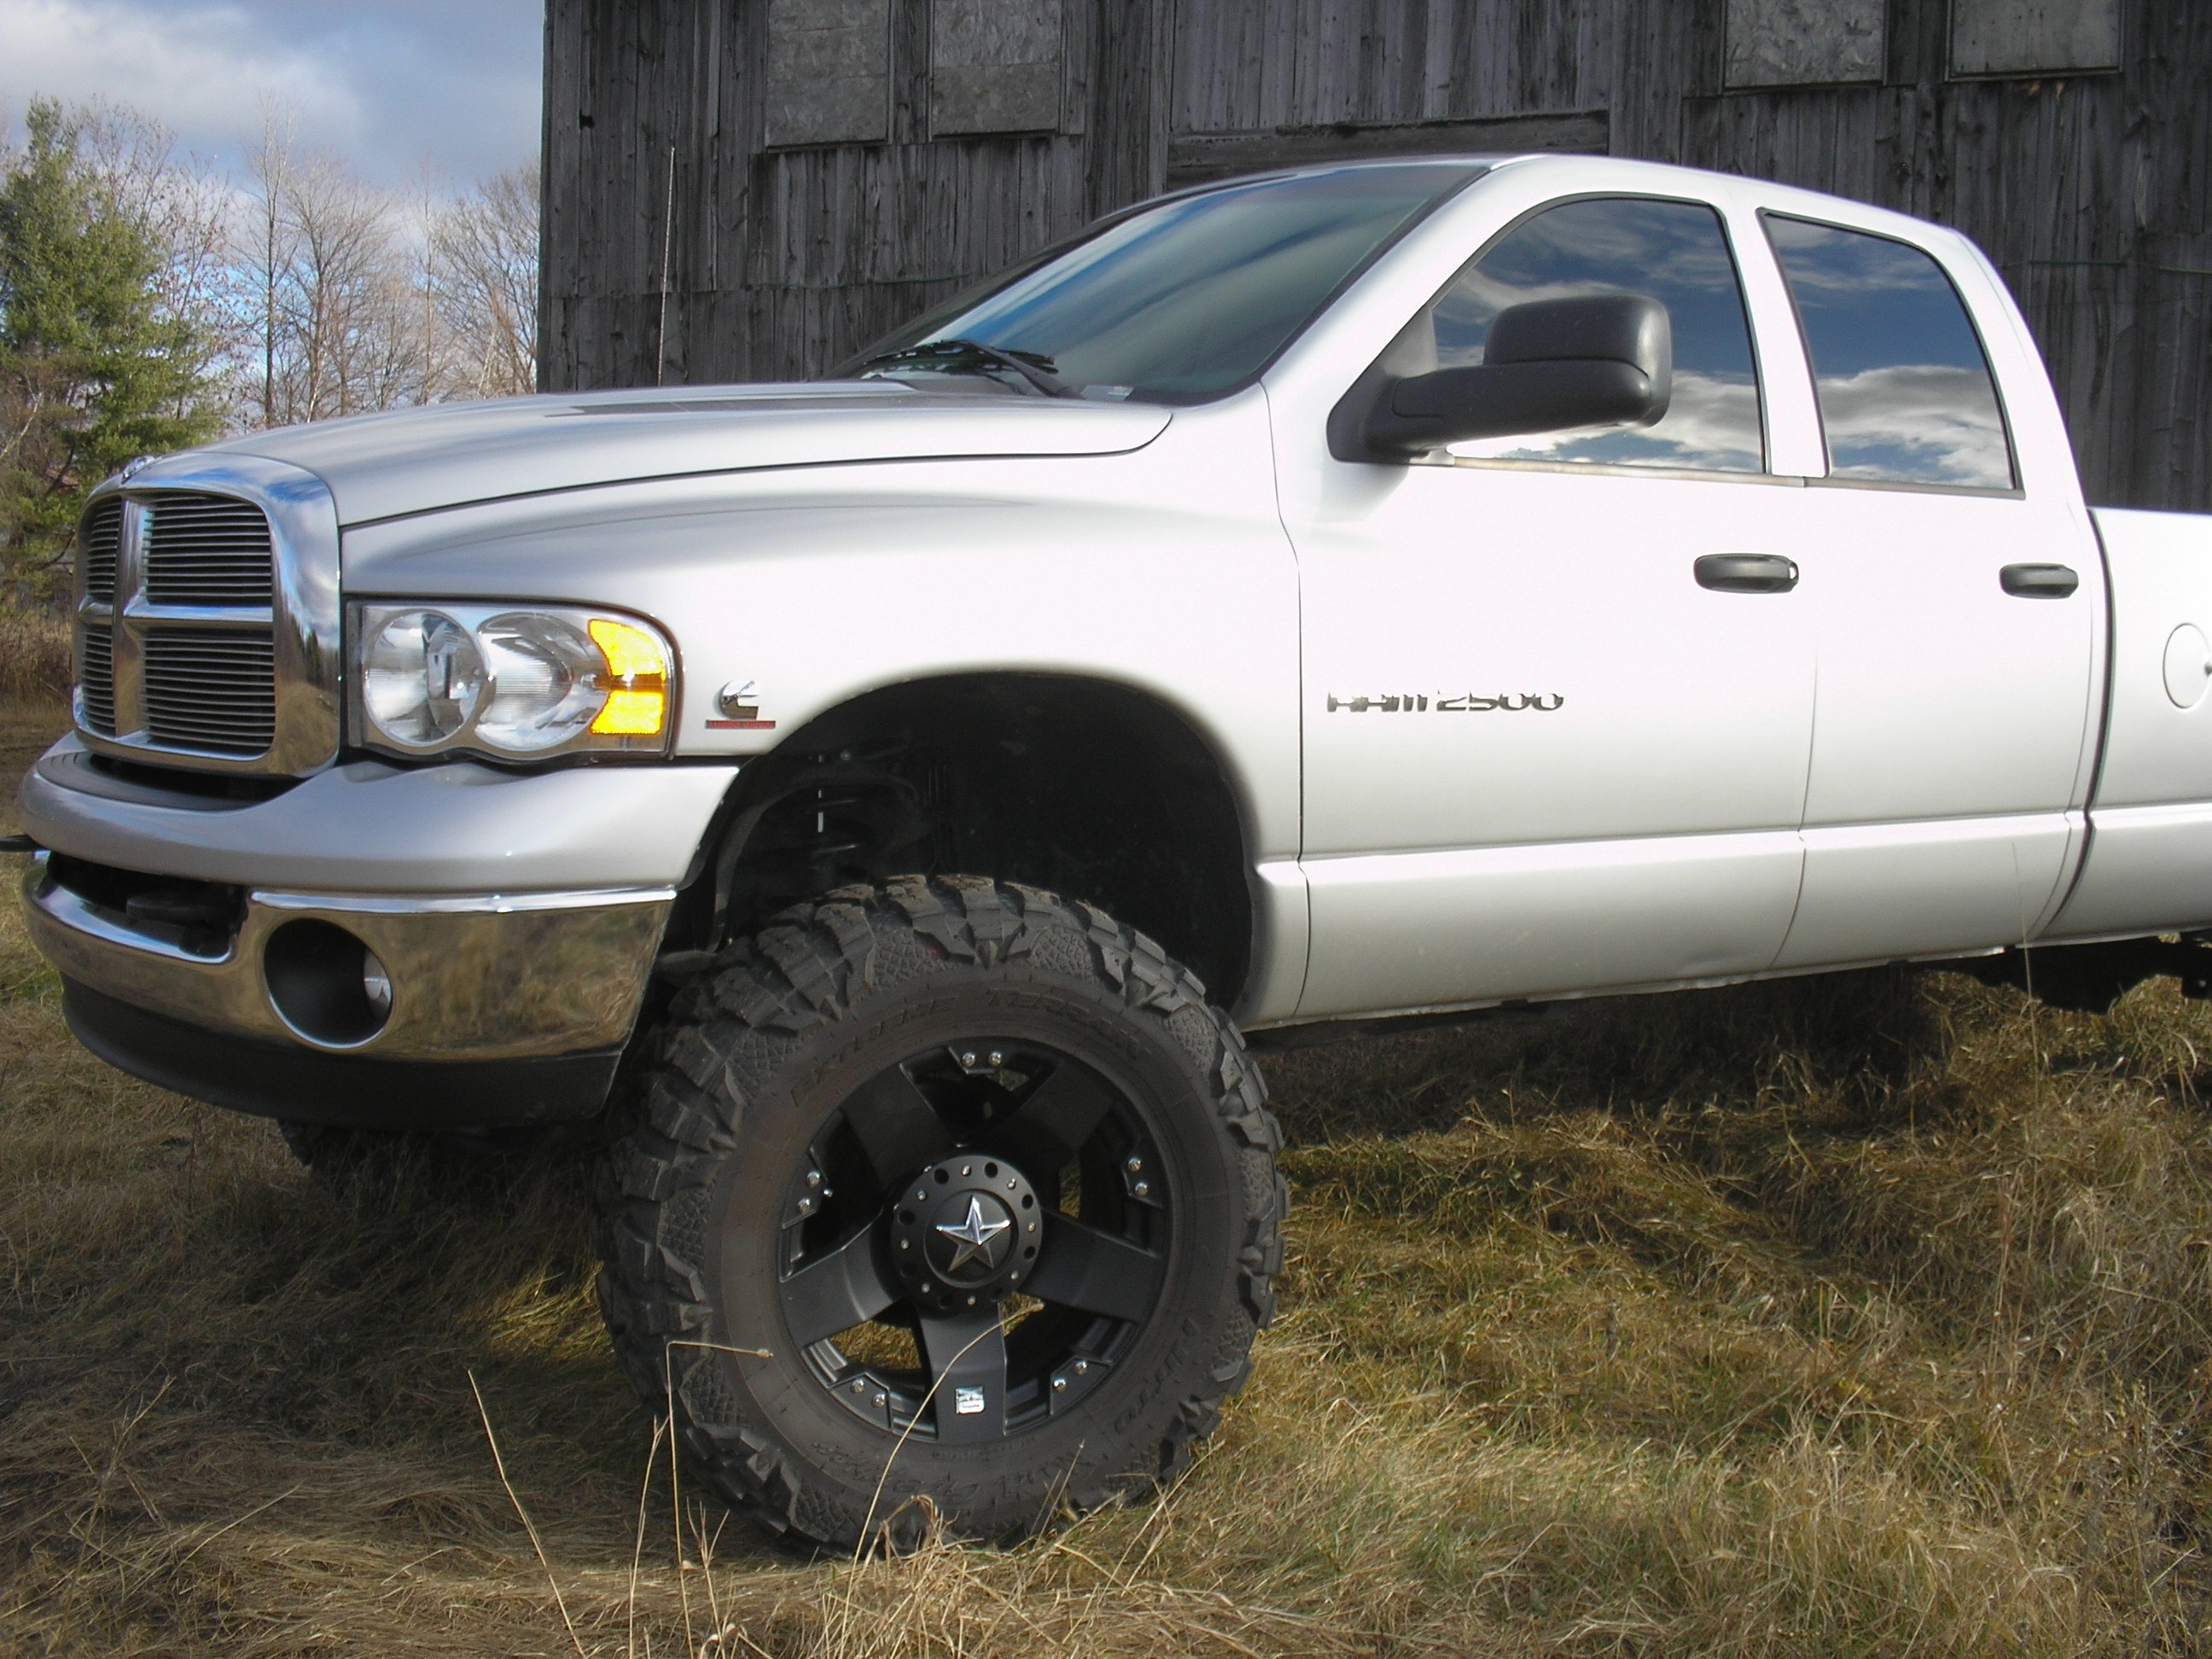 Mikedee 2003 Dodge Ram 2500 Quad Cab Specs Photos Modification Info At Cardomain